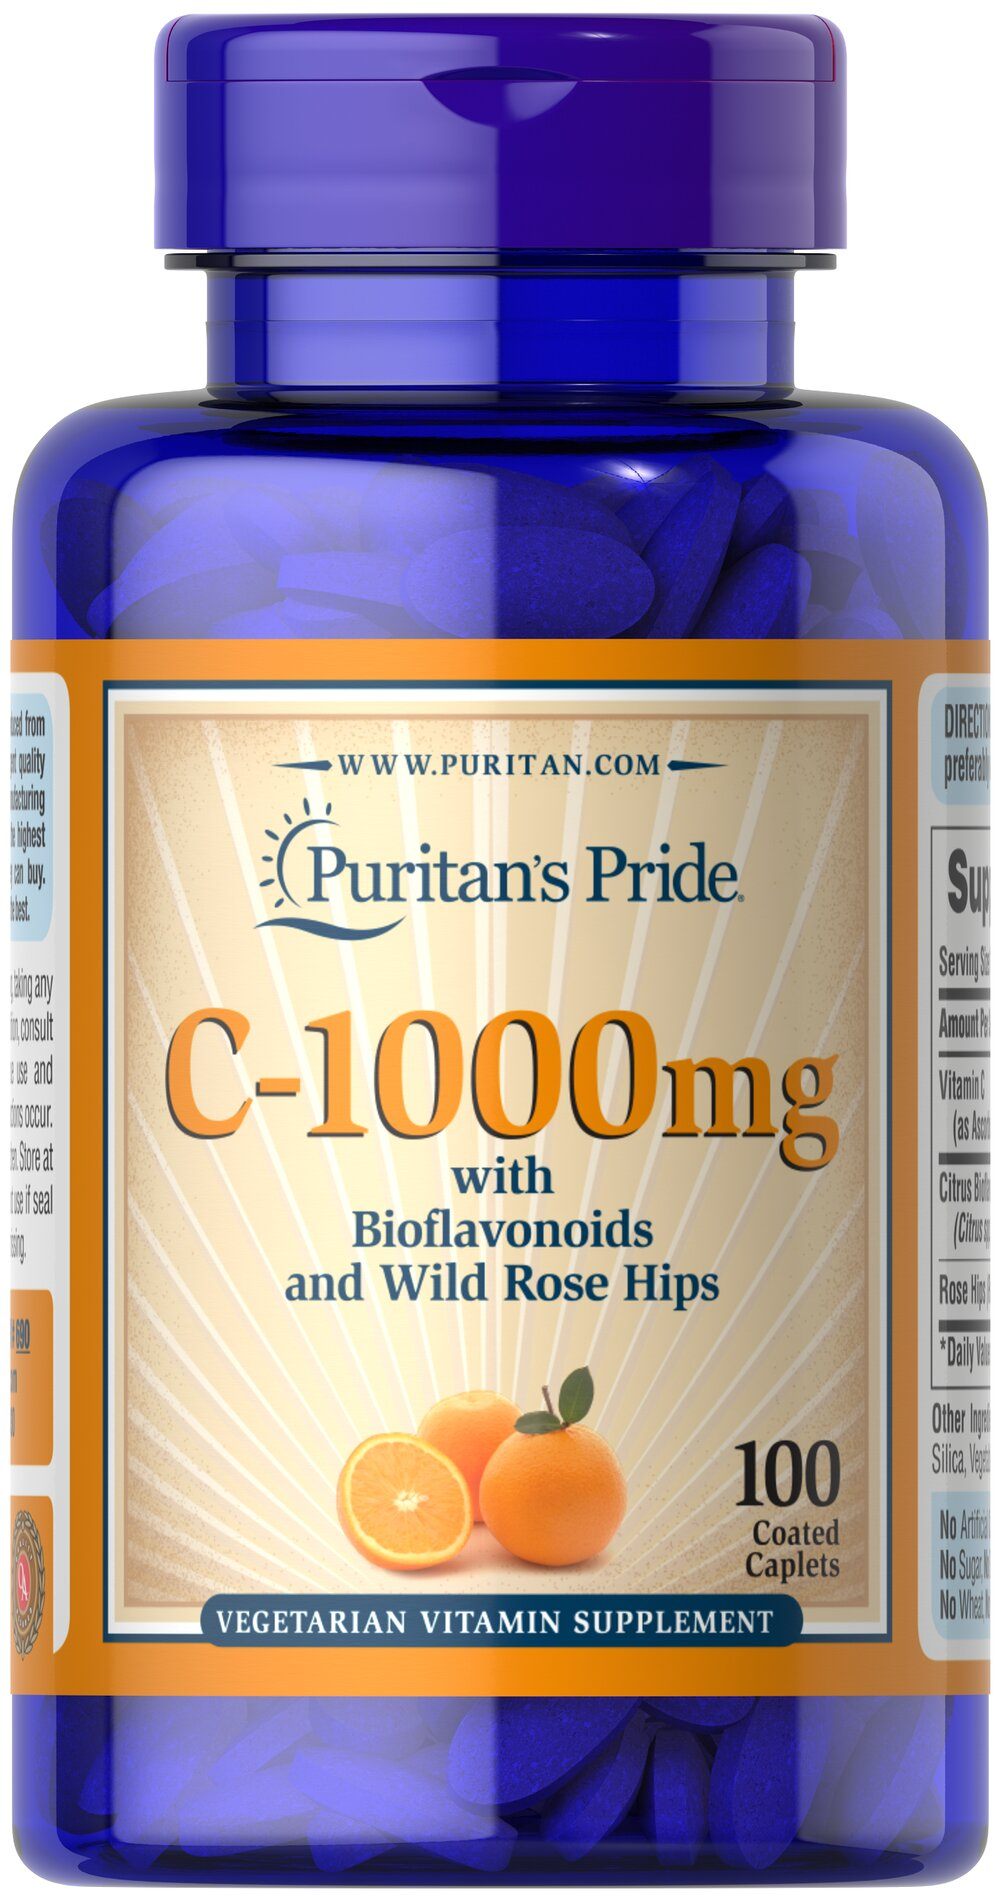 Vitamin C-1000 mg with Bioflavonoids & Rose Hips <p>Vitamin C is essential to many functions in the body and is one of the leading vitamins for immune support and helps fight cell-damaging free radicals.** Our product also includes Rose Hips, which help the body absorb and utilize Vitamin C.**</p><p>Offers superior antioxidant support.**</p><p>Supports healthy immune function and promotes well-being.**</p> 100 Caplets 1000 mg $9.49